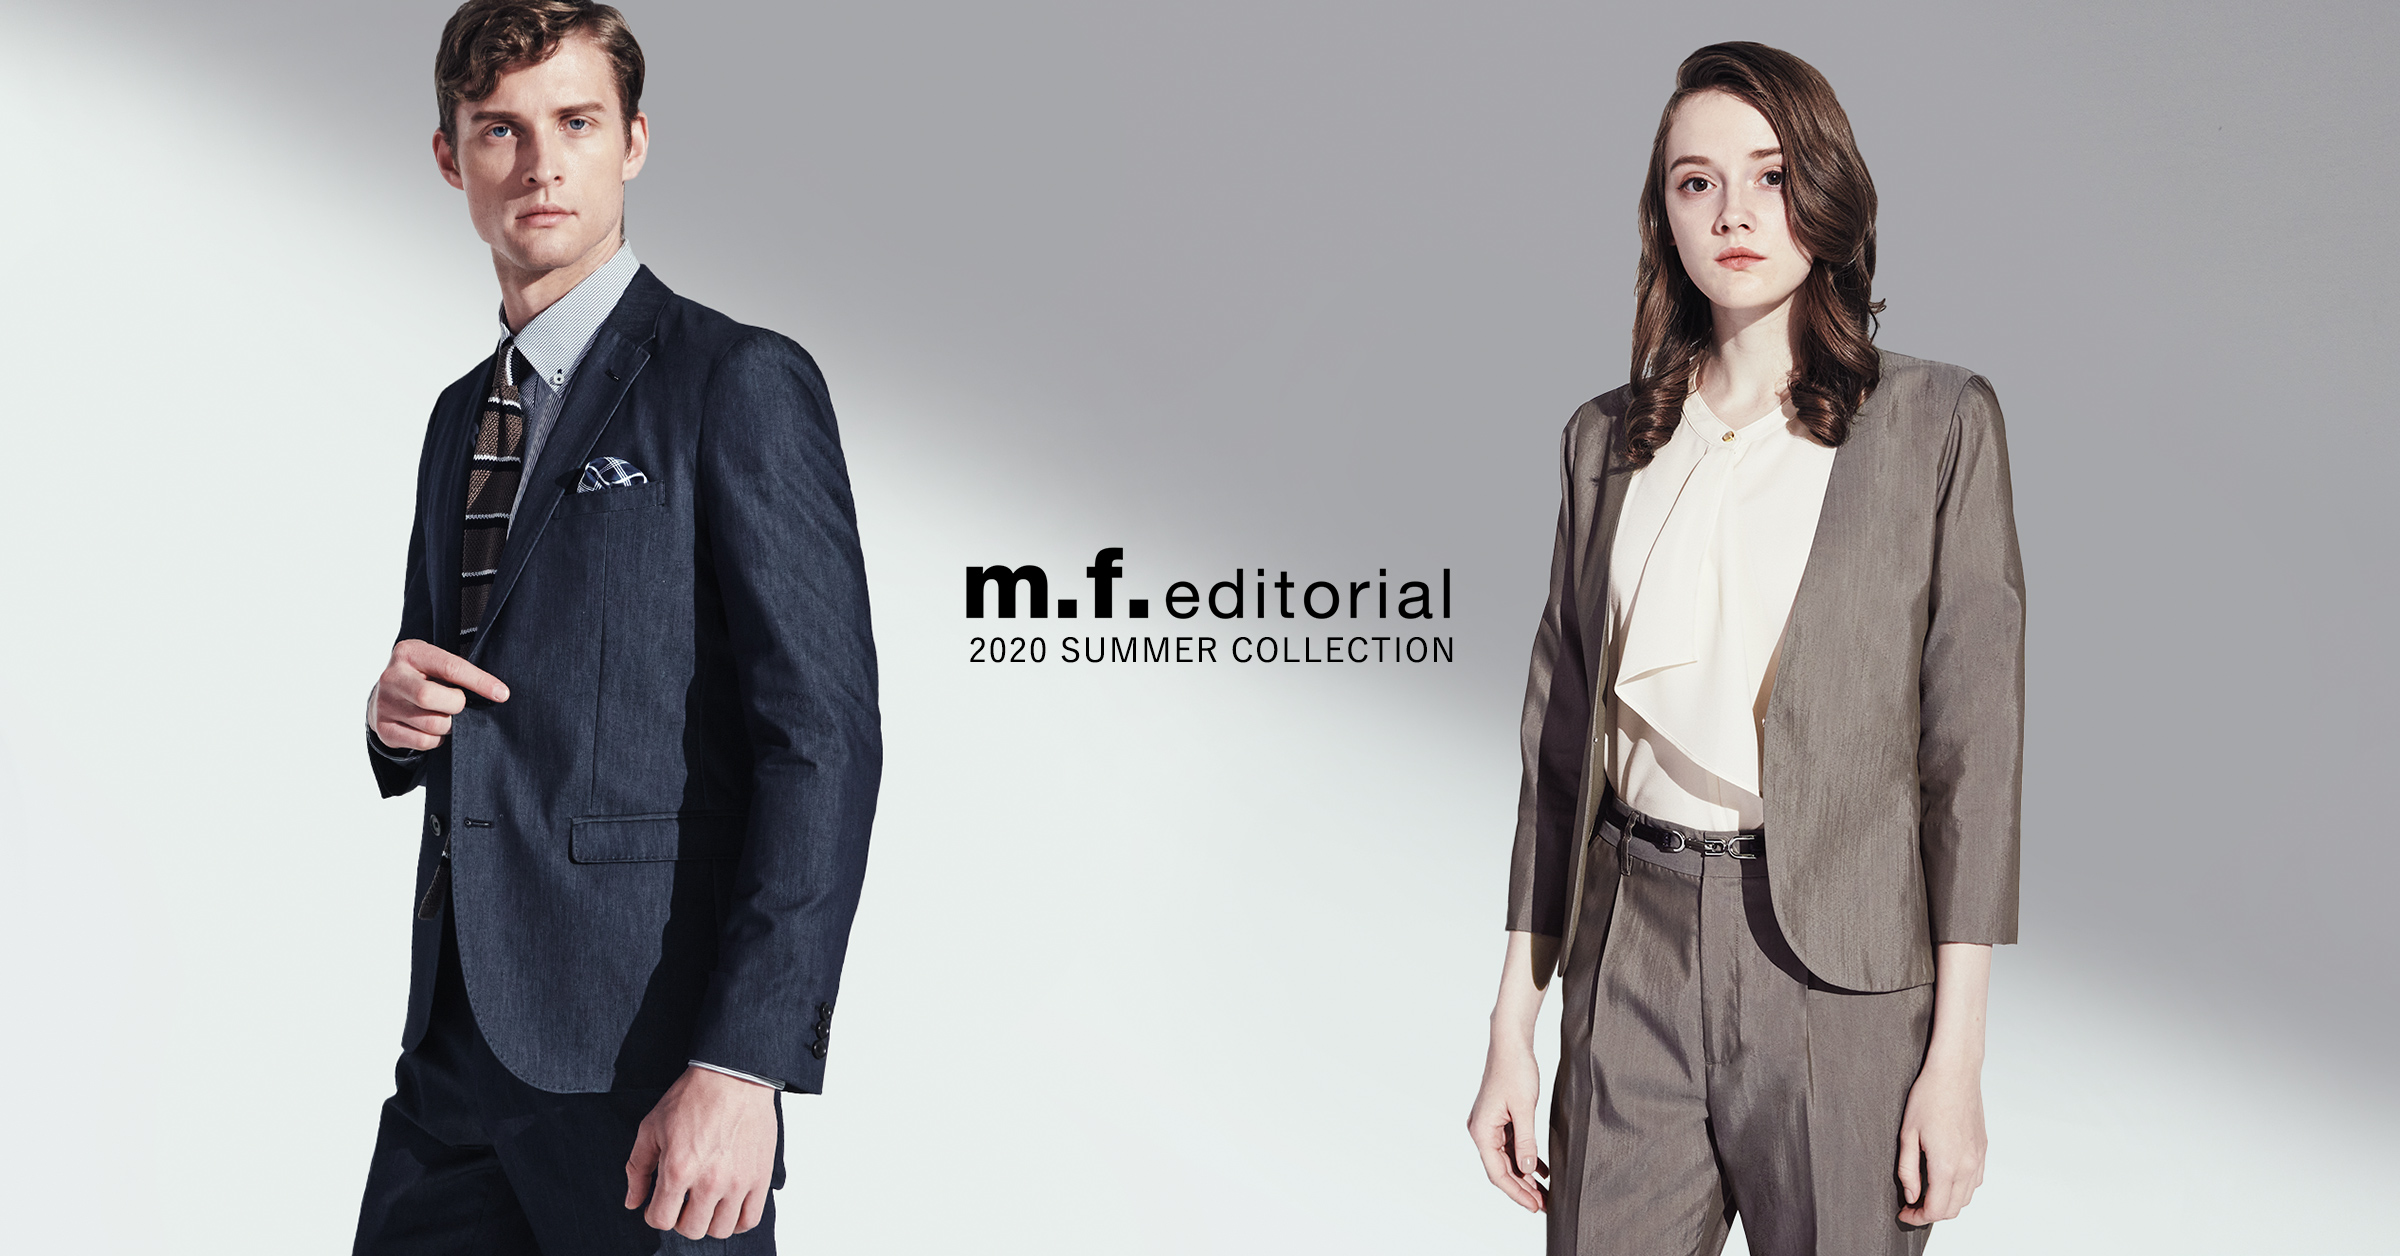 m.f.editorial 2020 SUMMER COLLECTION